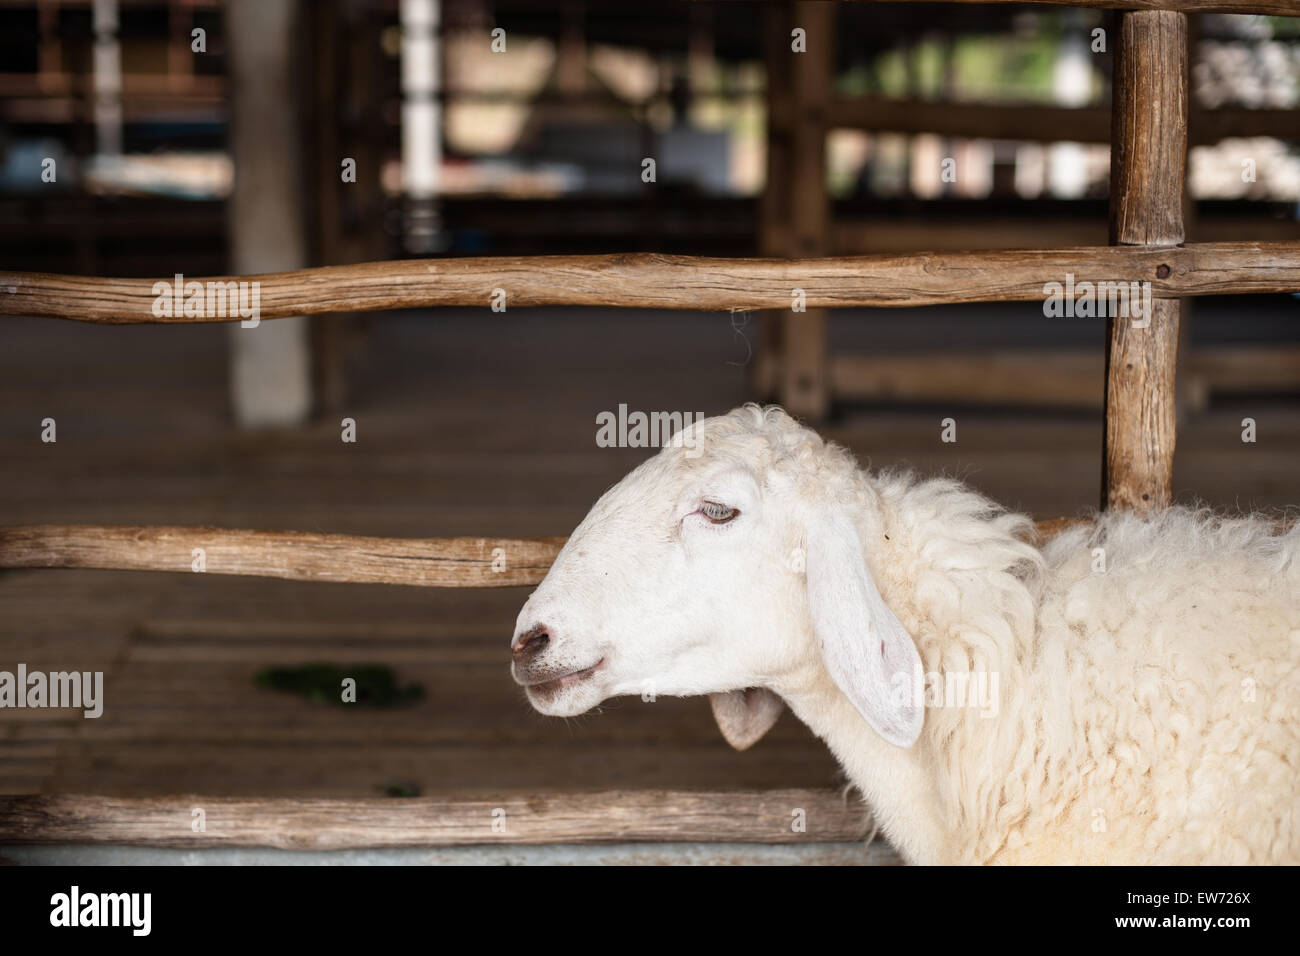 Sheep in the farm fence - Stock Image